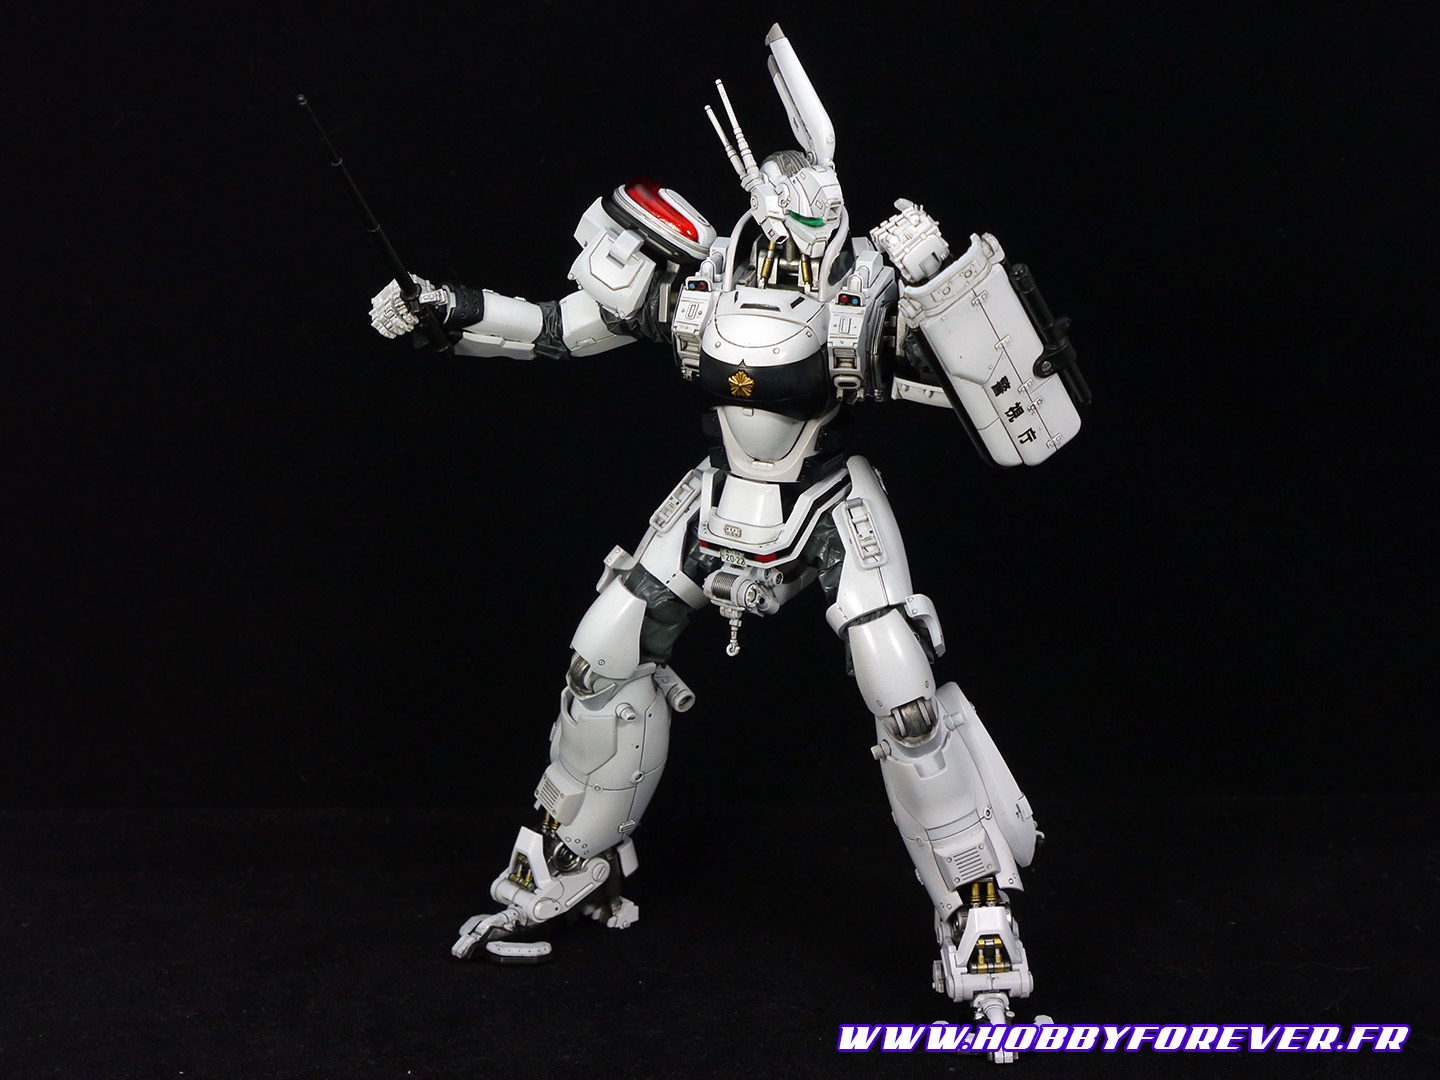 AV-98 Ingram - Patlabor Next Generation 1/48